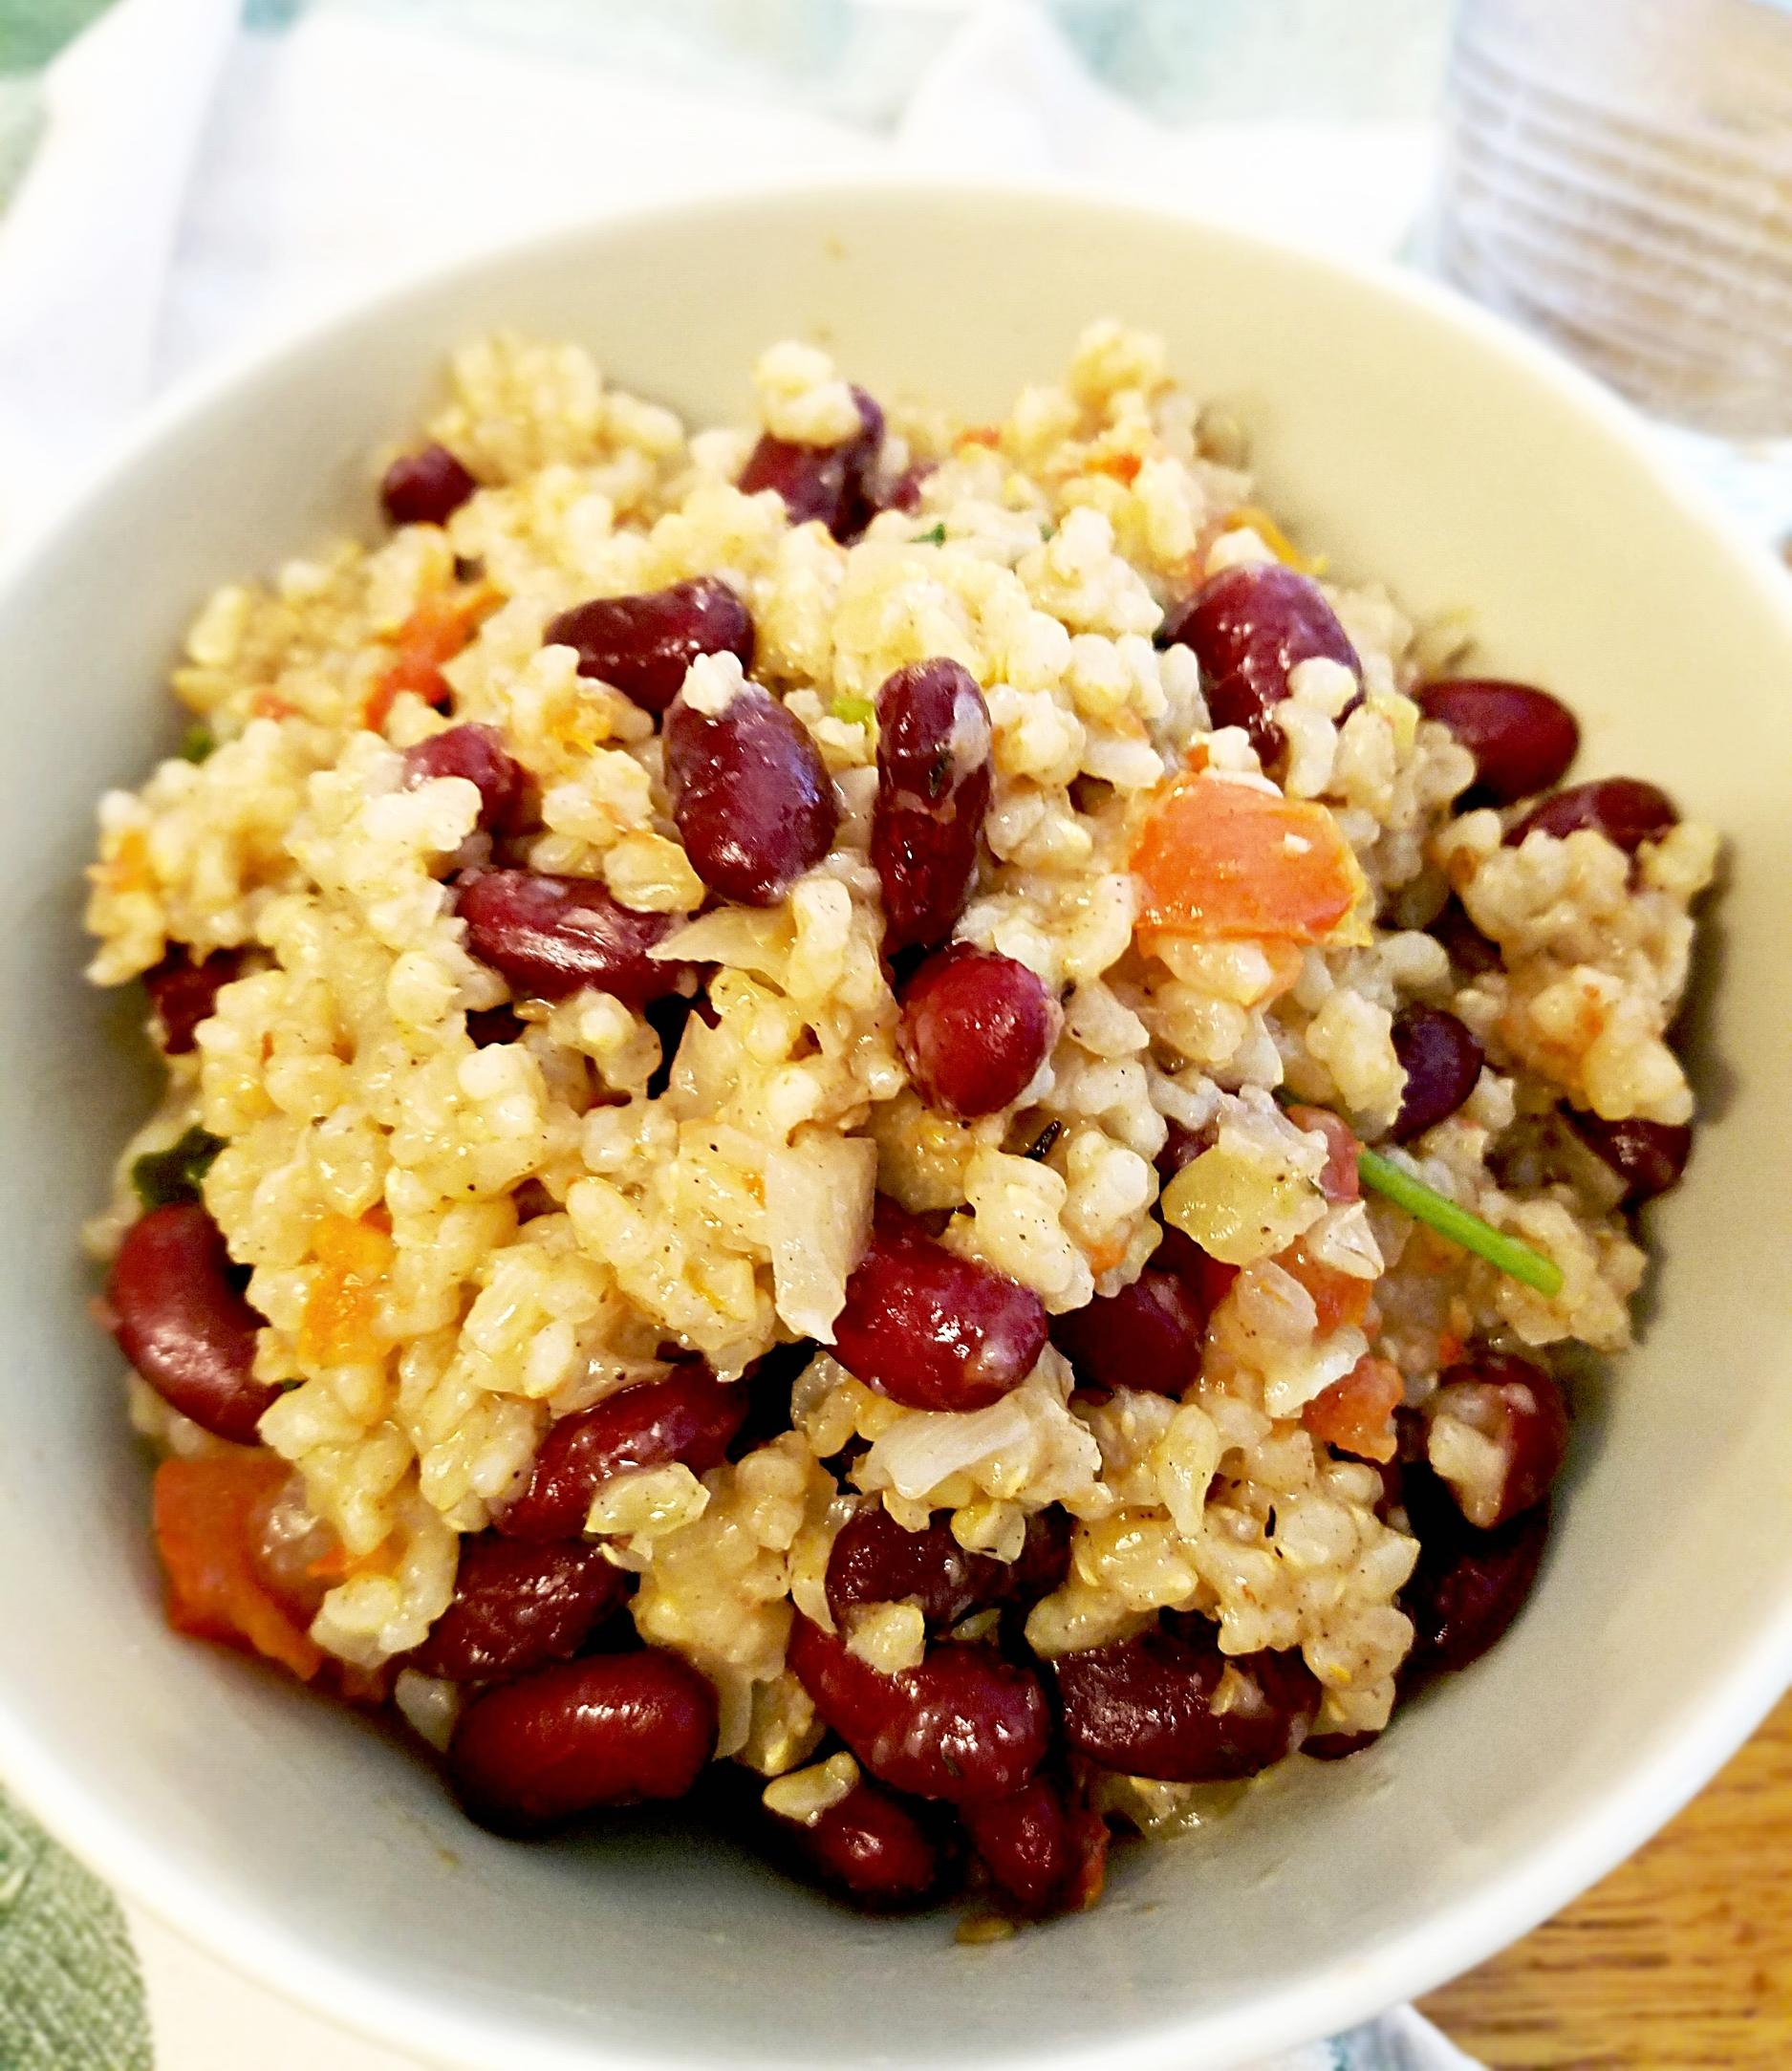 Slow Cooker Kidney Beans and Coconut Brown Rice4.jpg